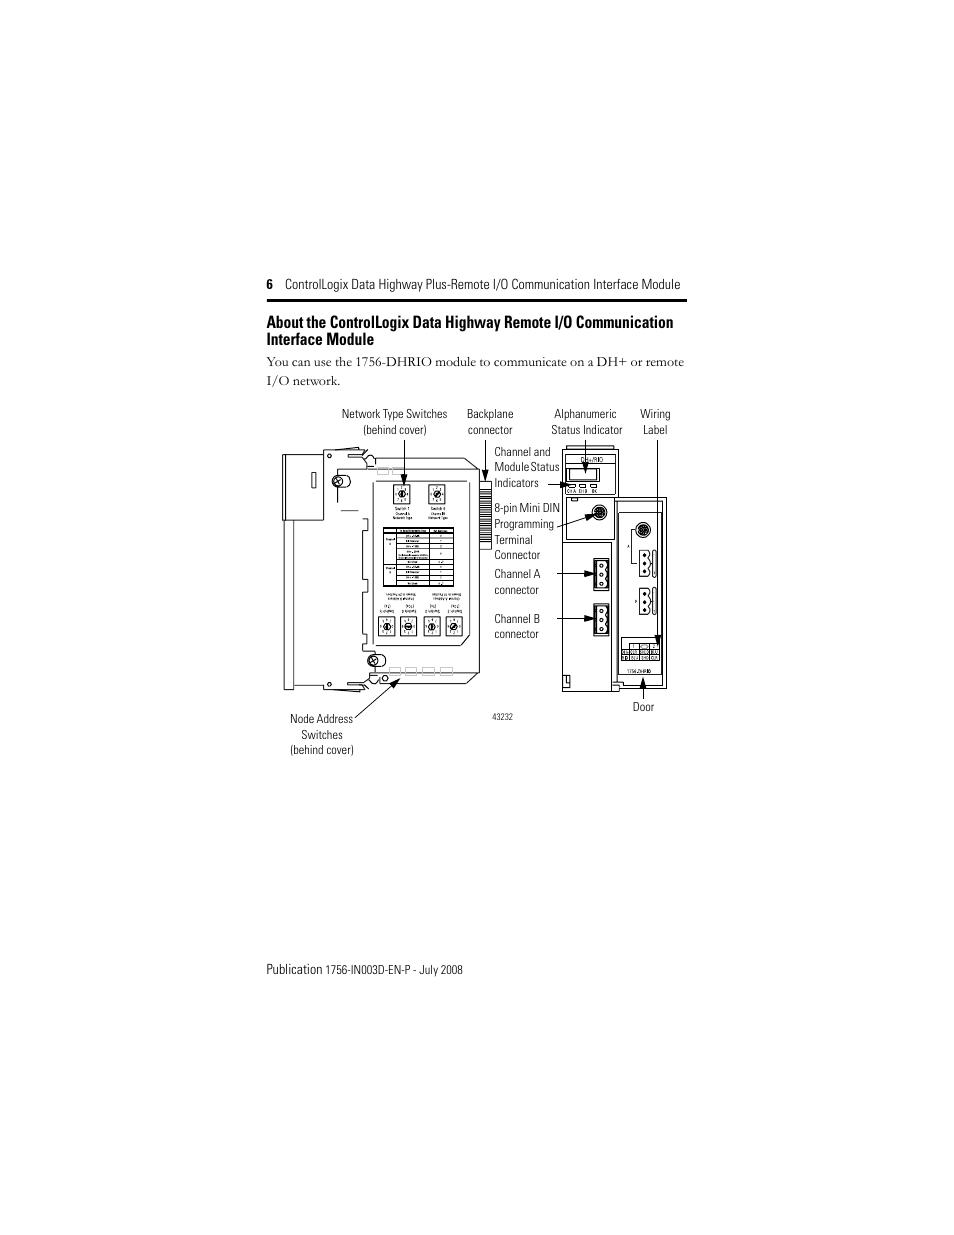 Data Highway Plus Wiring Diagrams Great Installation Of Rockwell Diagram Automation 1756 Dhrio Controllogix Remote Rh Manualsdir Com Home Network